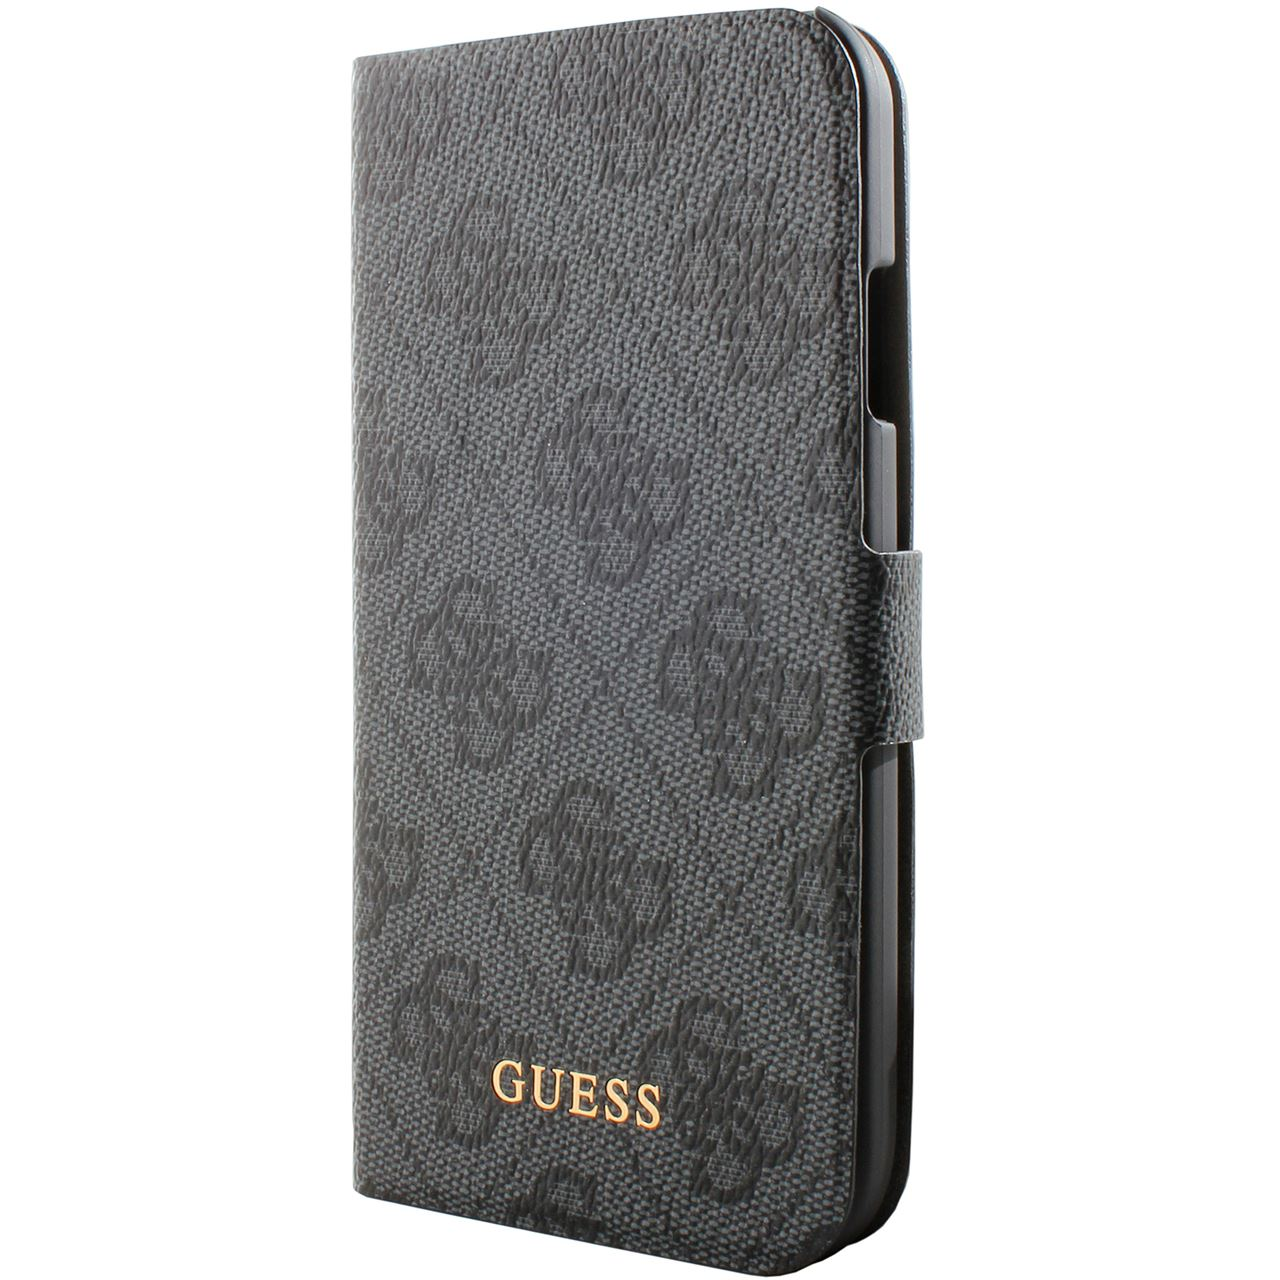 bigben interactive guess leather klapp etui f r galaxy s4. Black Bedroom Furniture Sets. Home Design Ideas